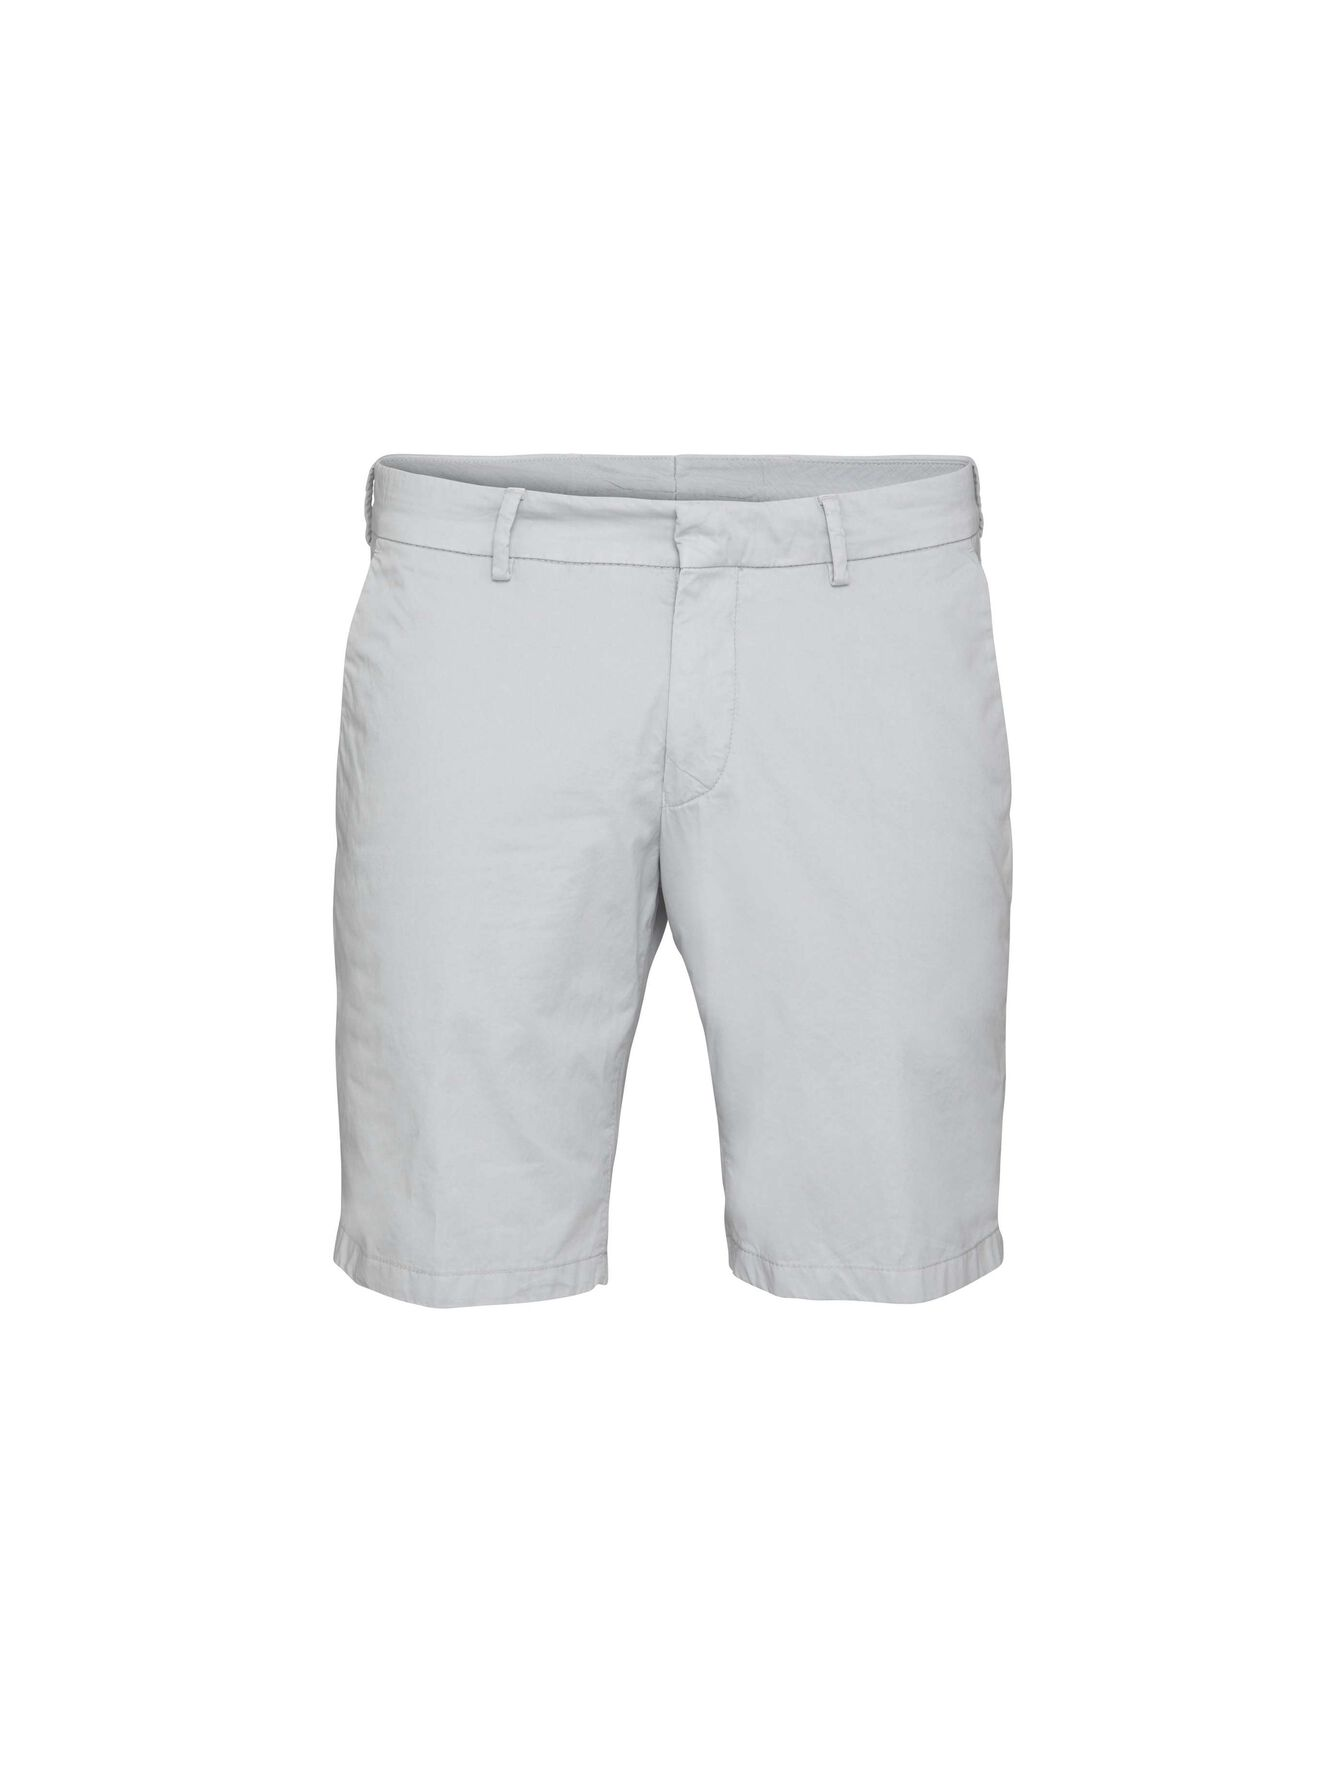 Hills 6Ppt Shorts in Light grey melange from Tiger of Sweden